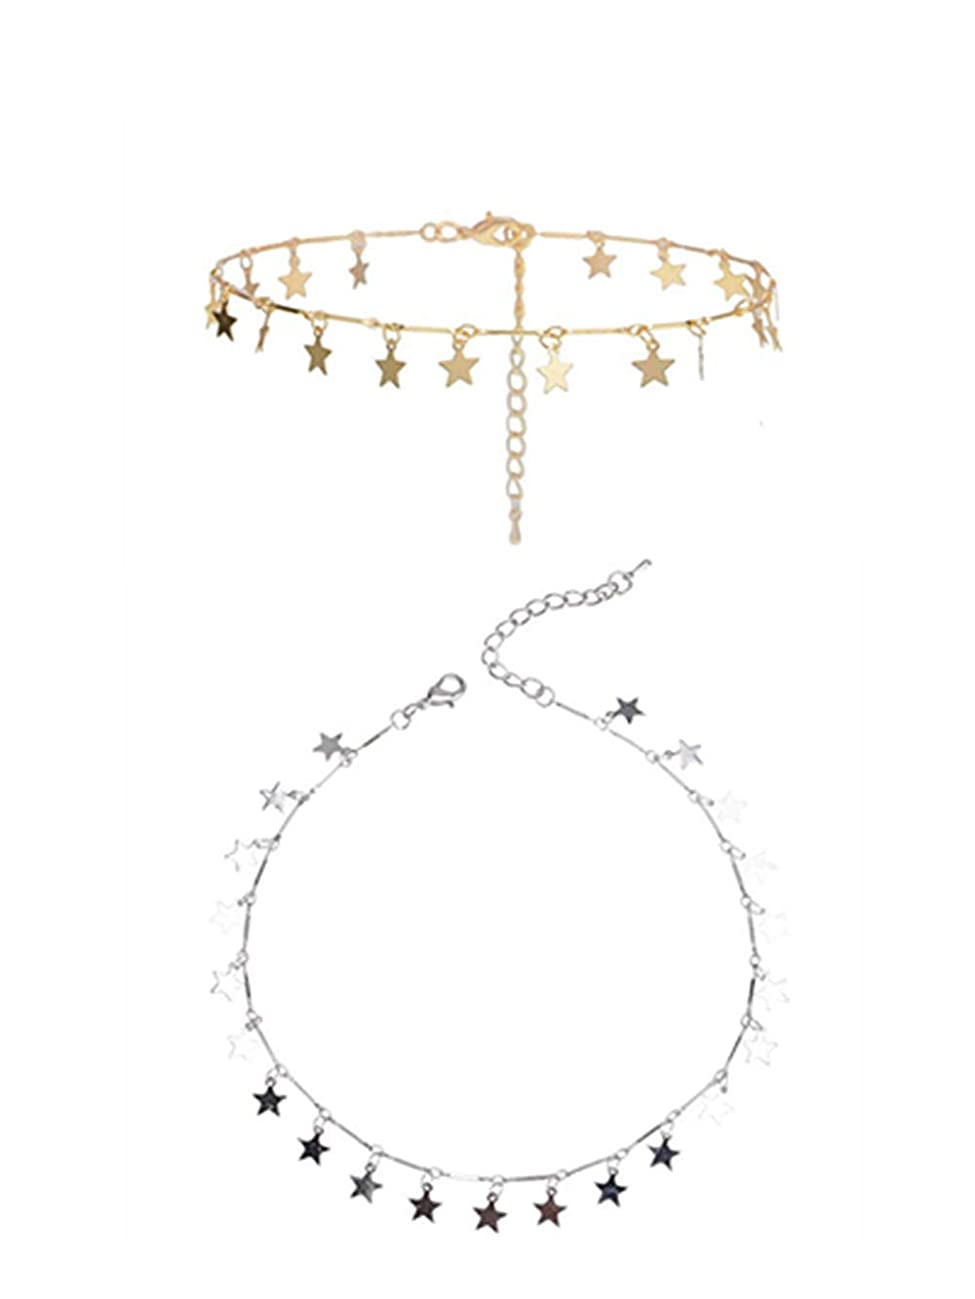 Sophie Land (2 Pieces Silver and Golden Lucky Star Choker Necklace Pendant Disc Chain Statement Necklace for Women Girls